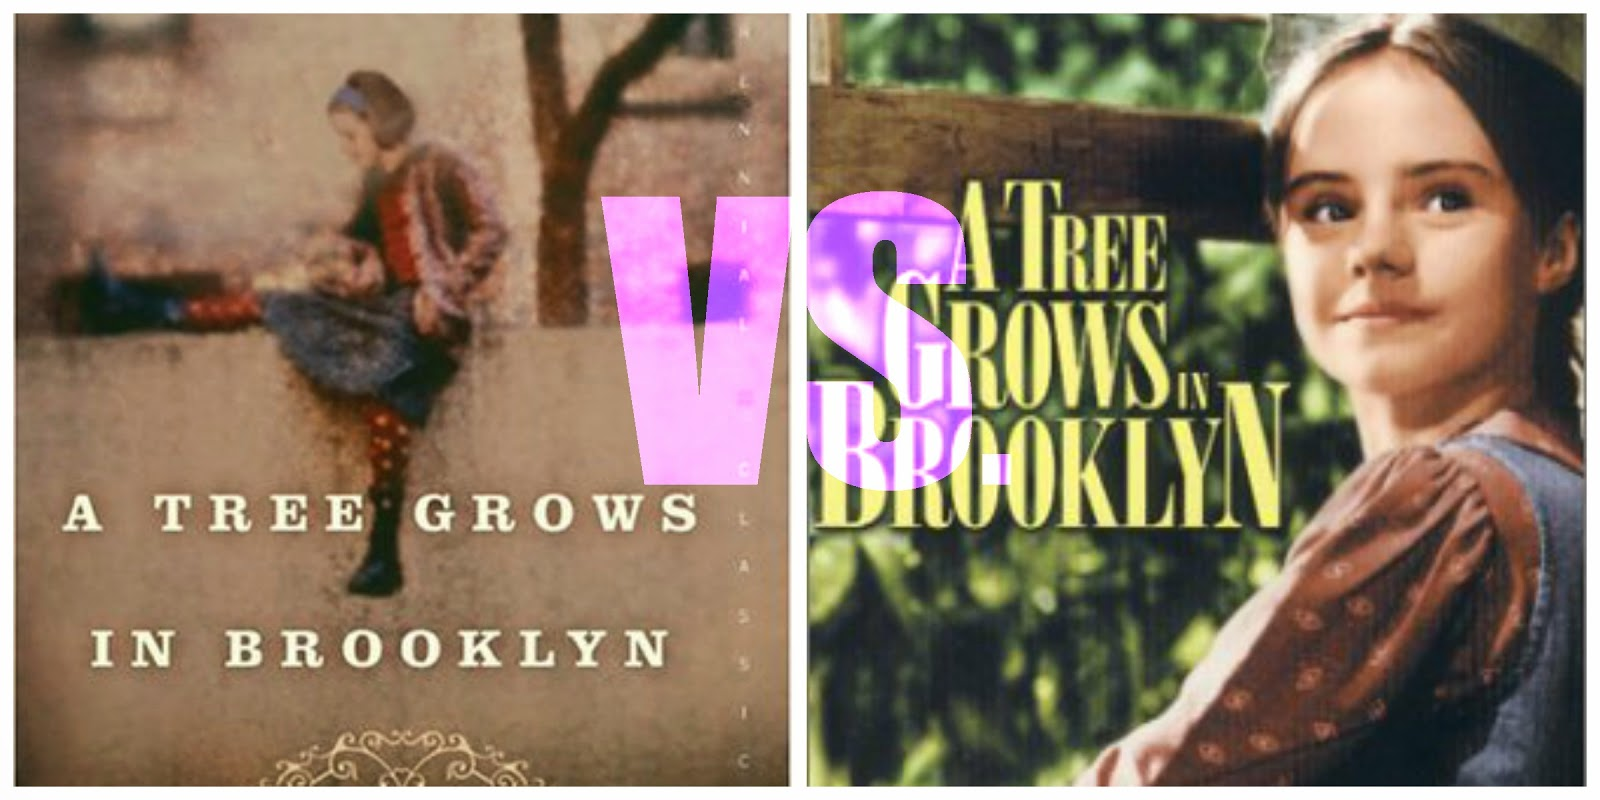 ️ A Tree Grows In Brooklyn Review. A Tree Grows In